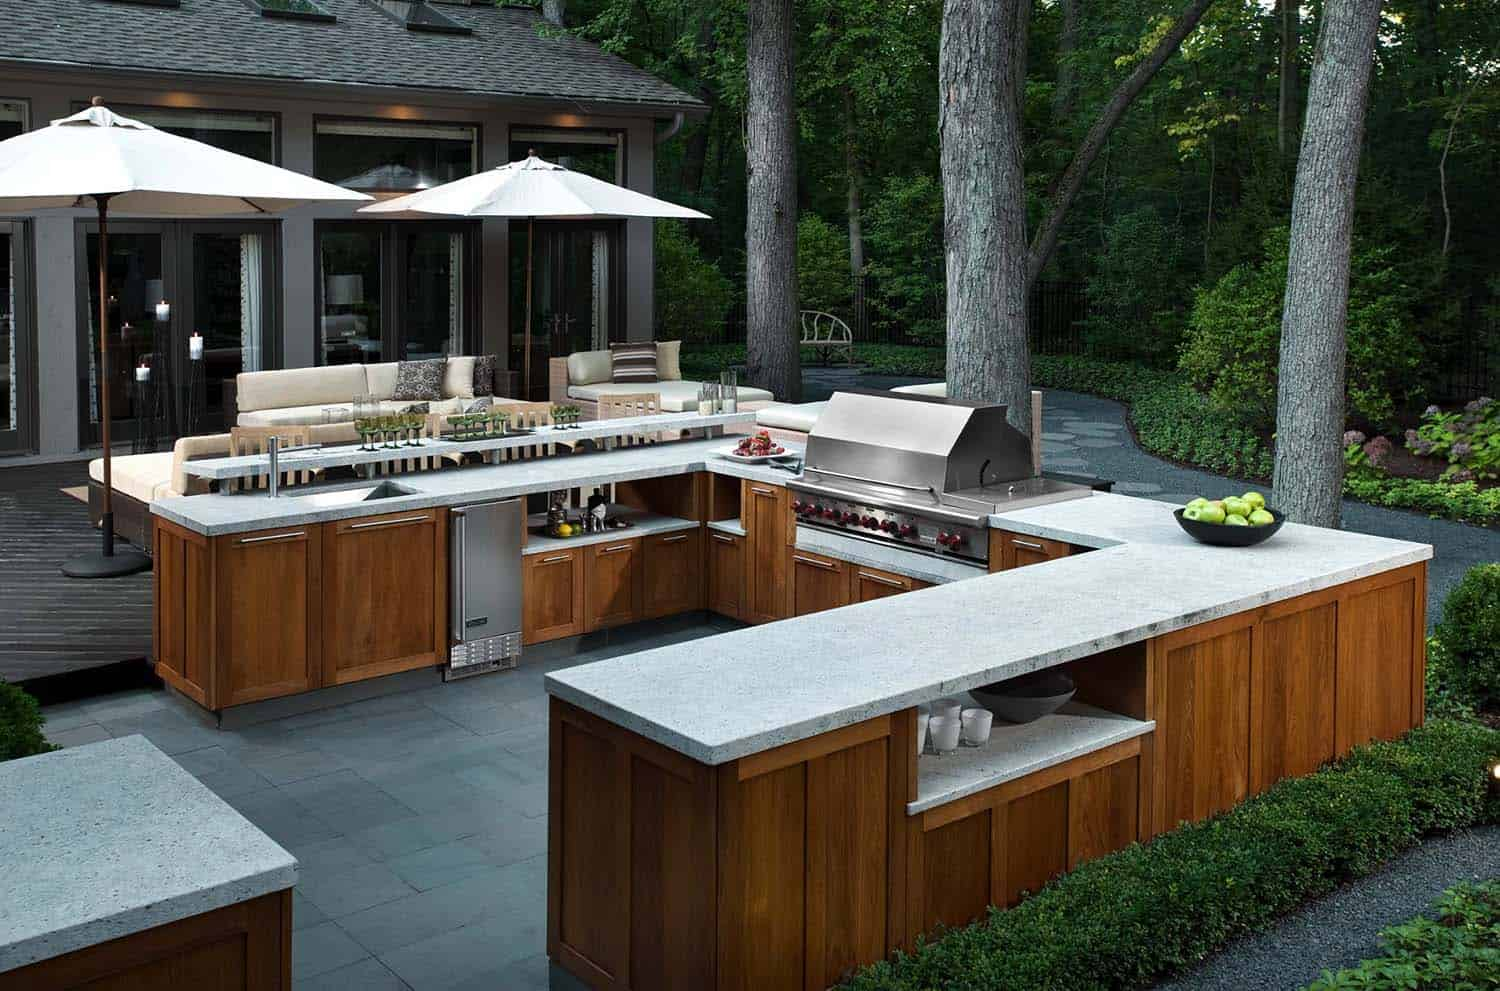 Merveilleux Outdoor Kitchens Bars Entertaining 14 1 Kindesign